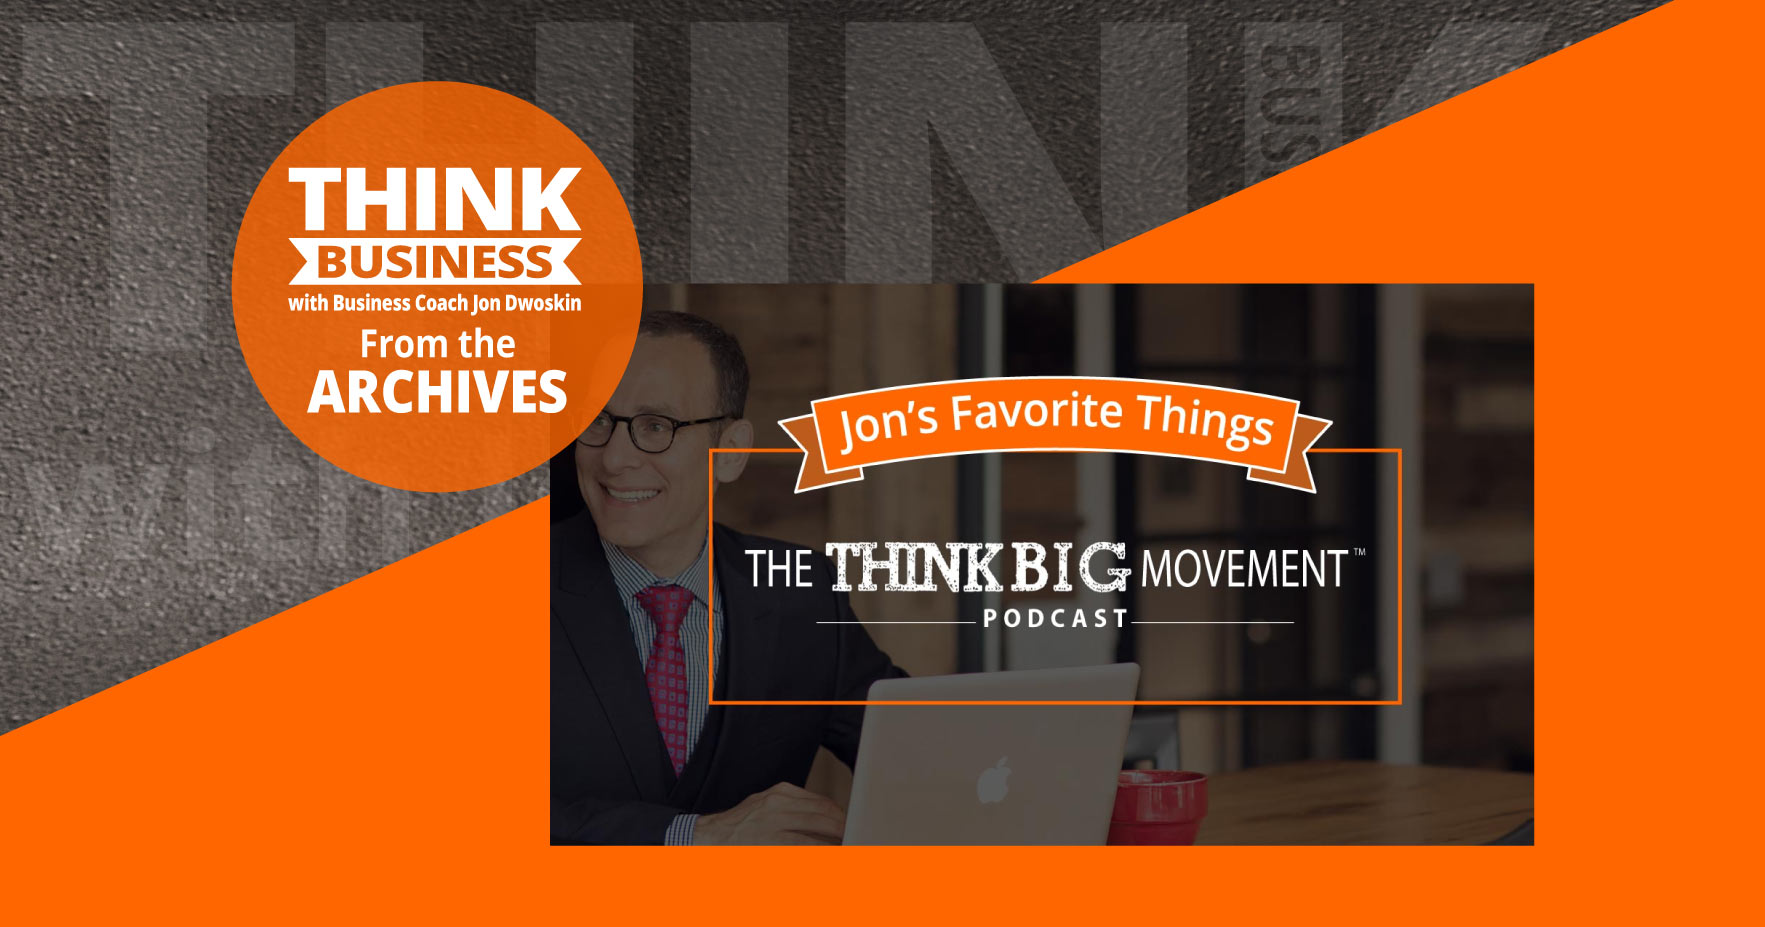 THINK Business Podcast: Jon's Favorite Things: The Richest Man in Babylon